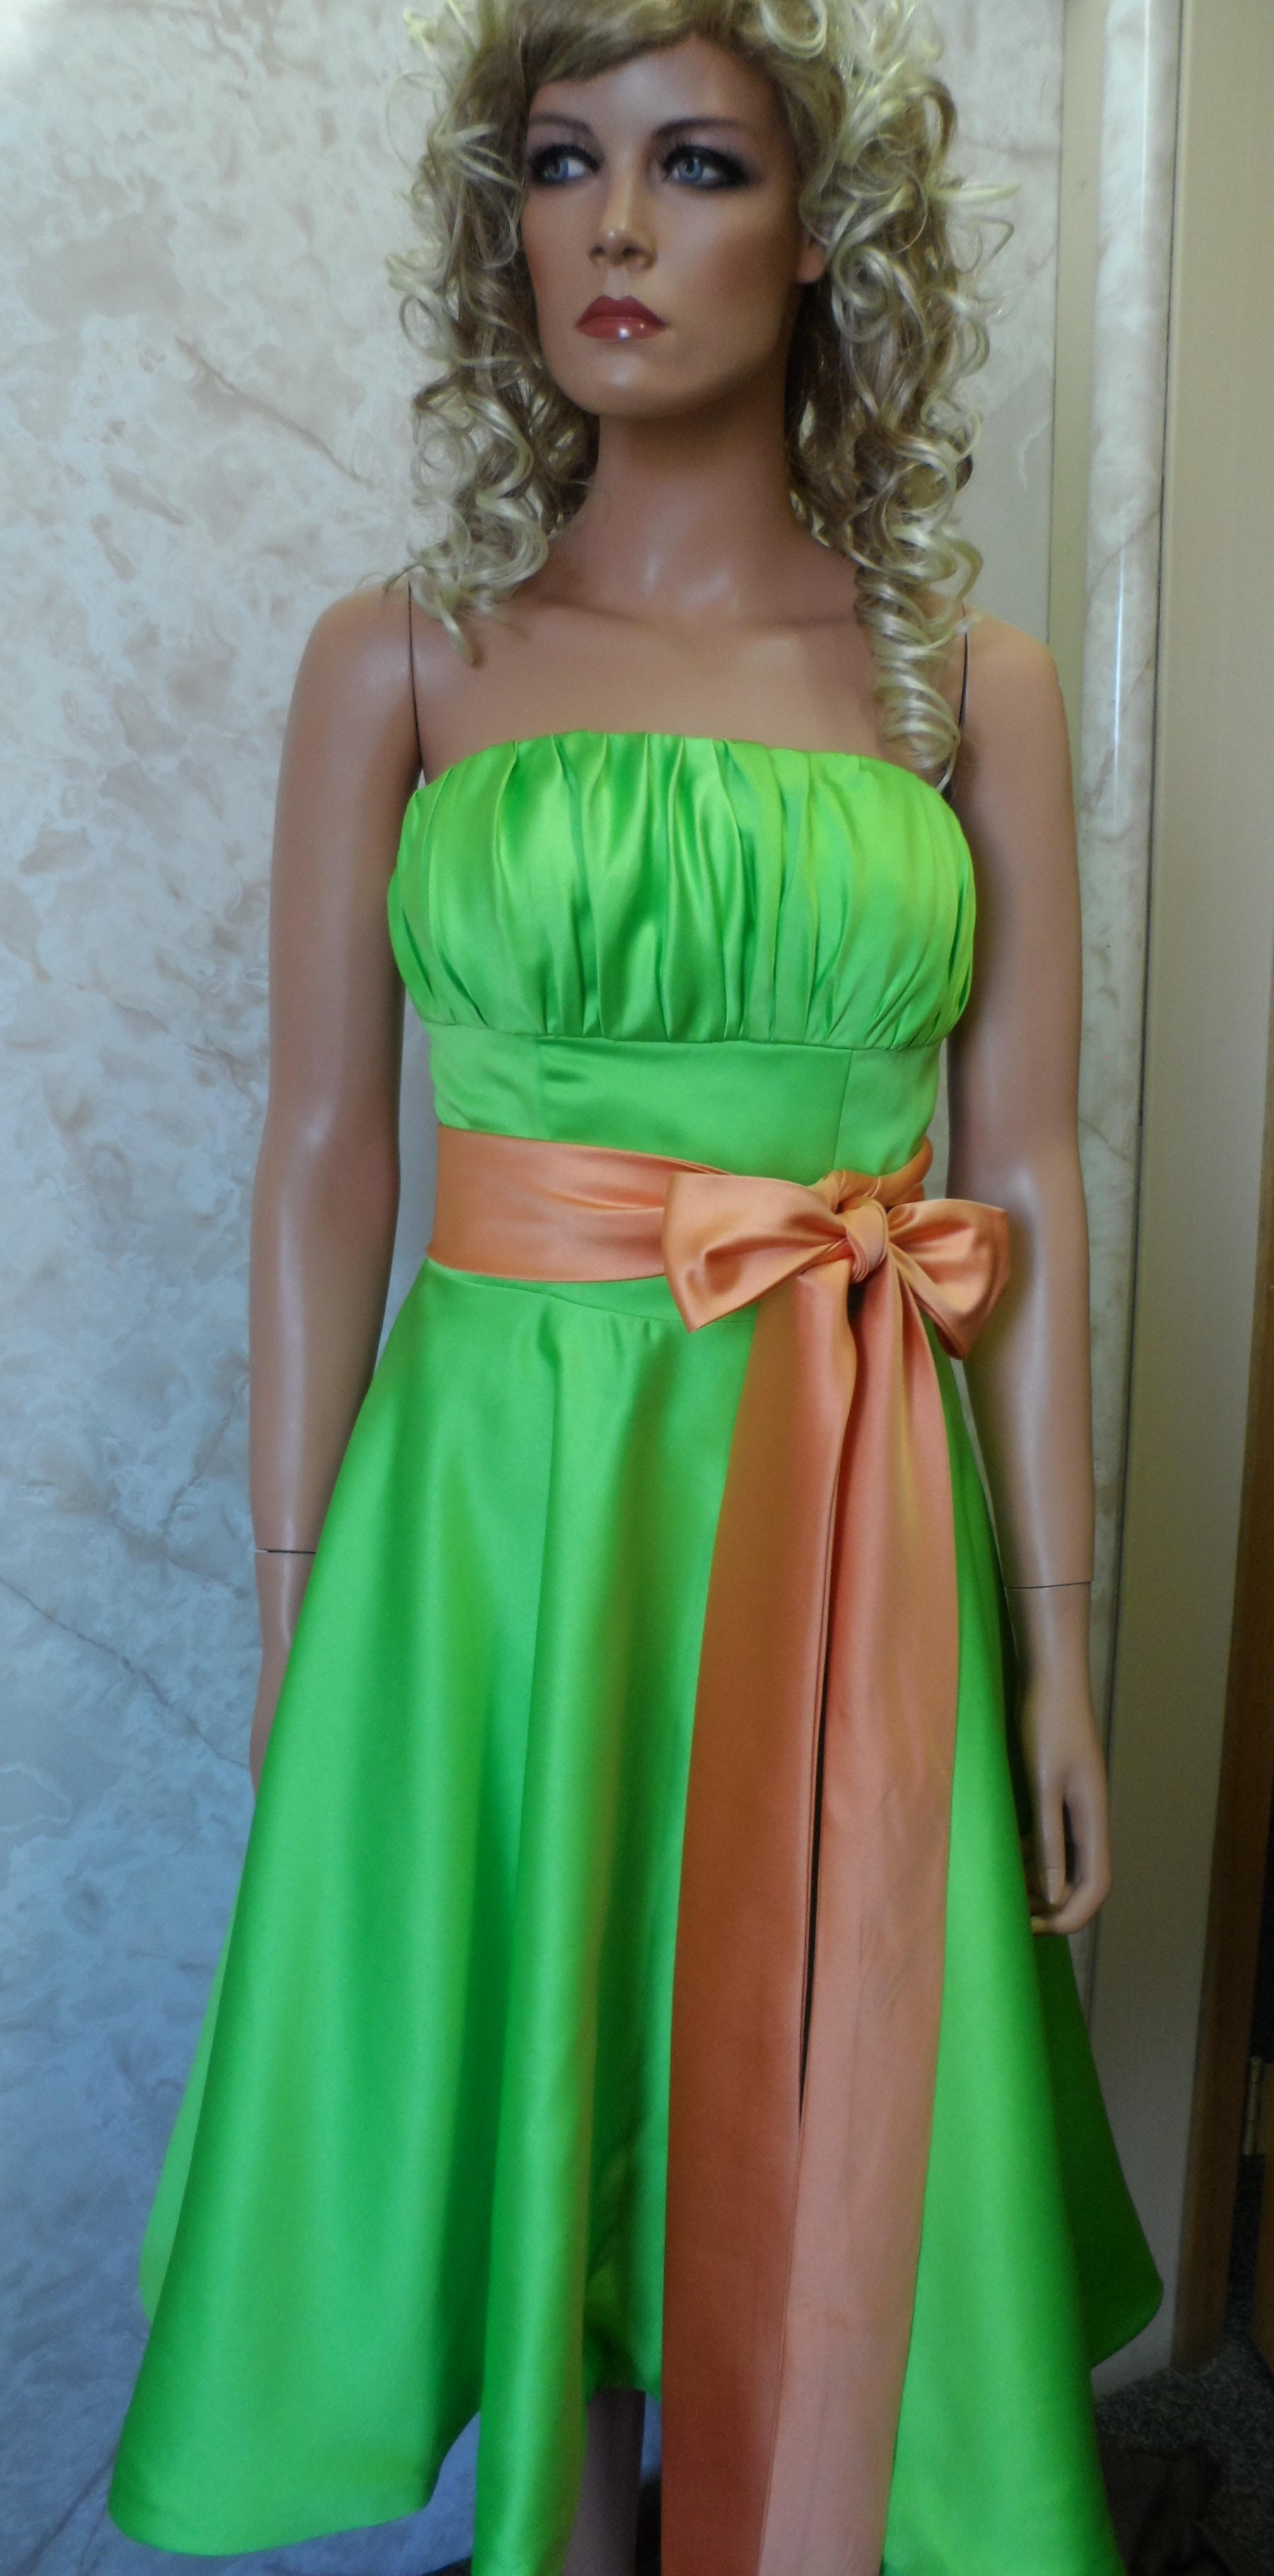 Lime green strapless dress with pumpkin sash